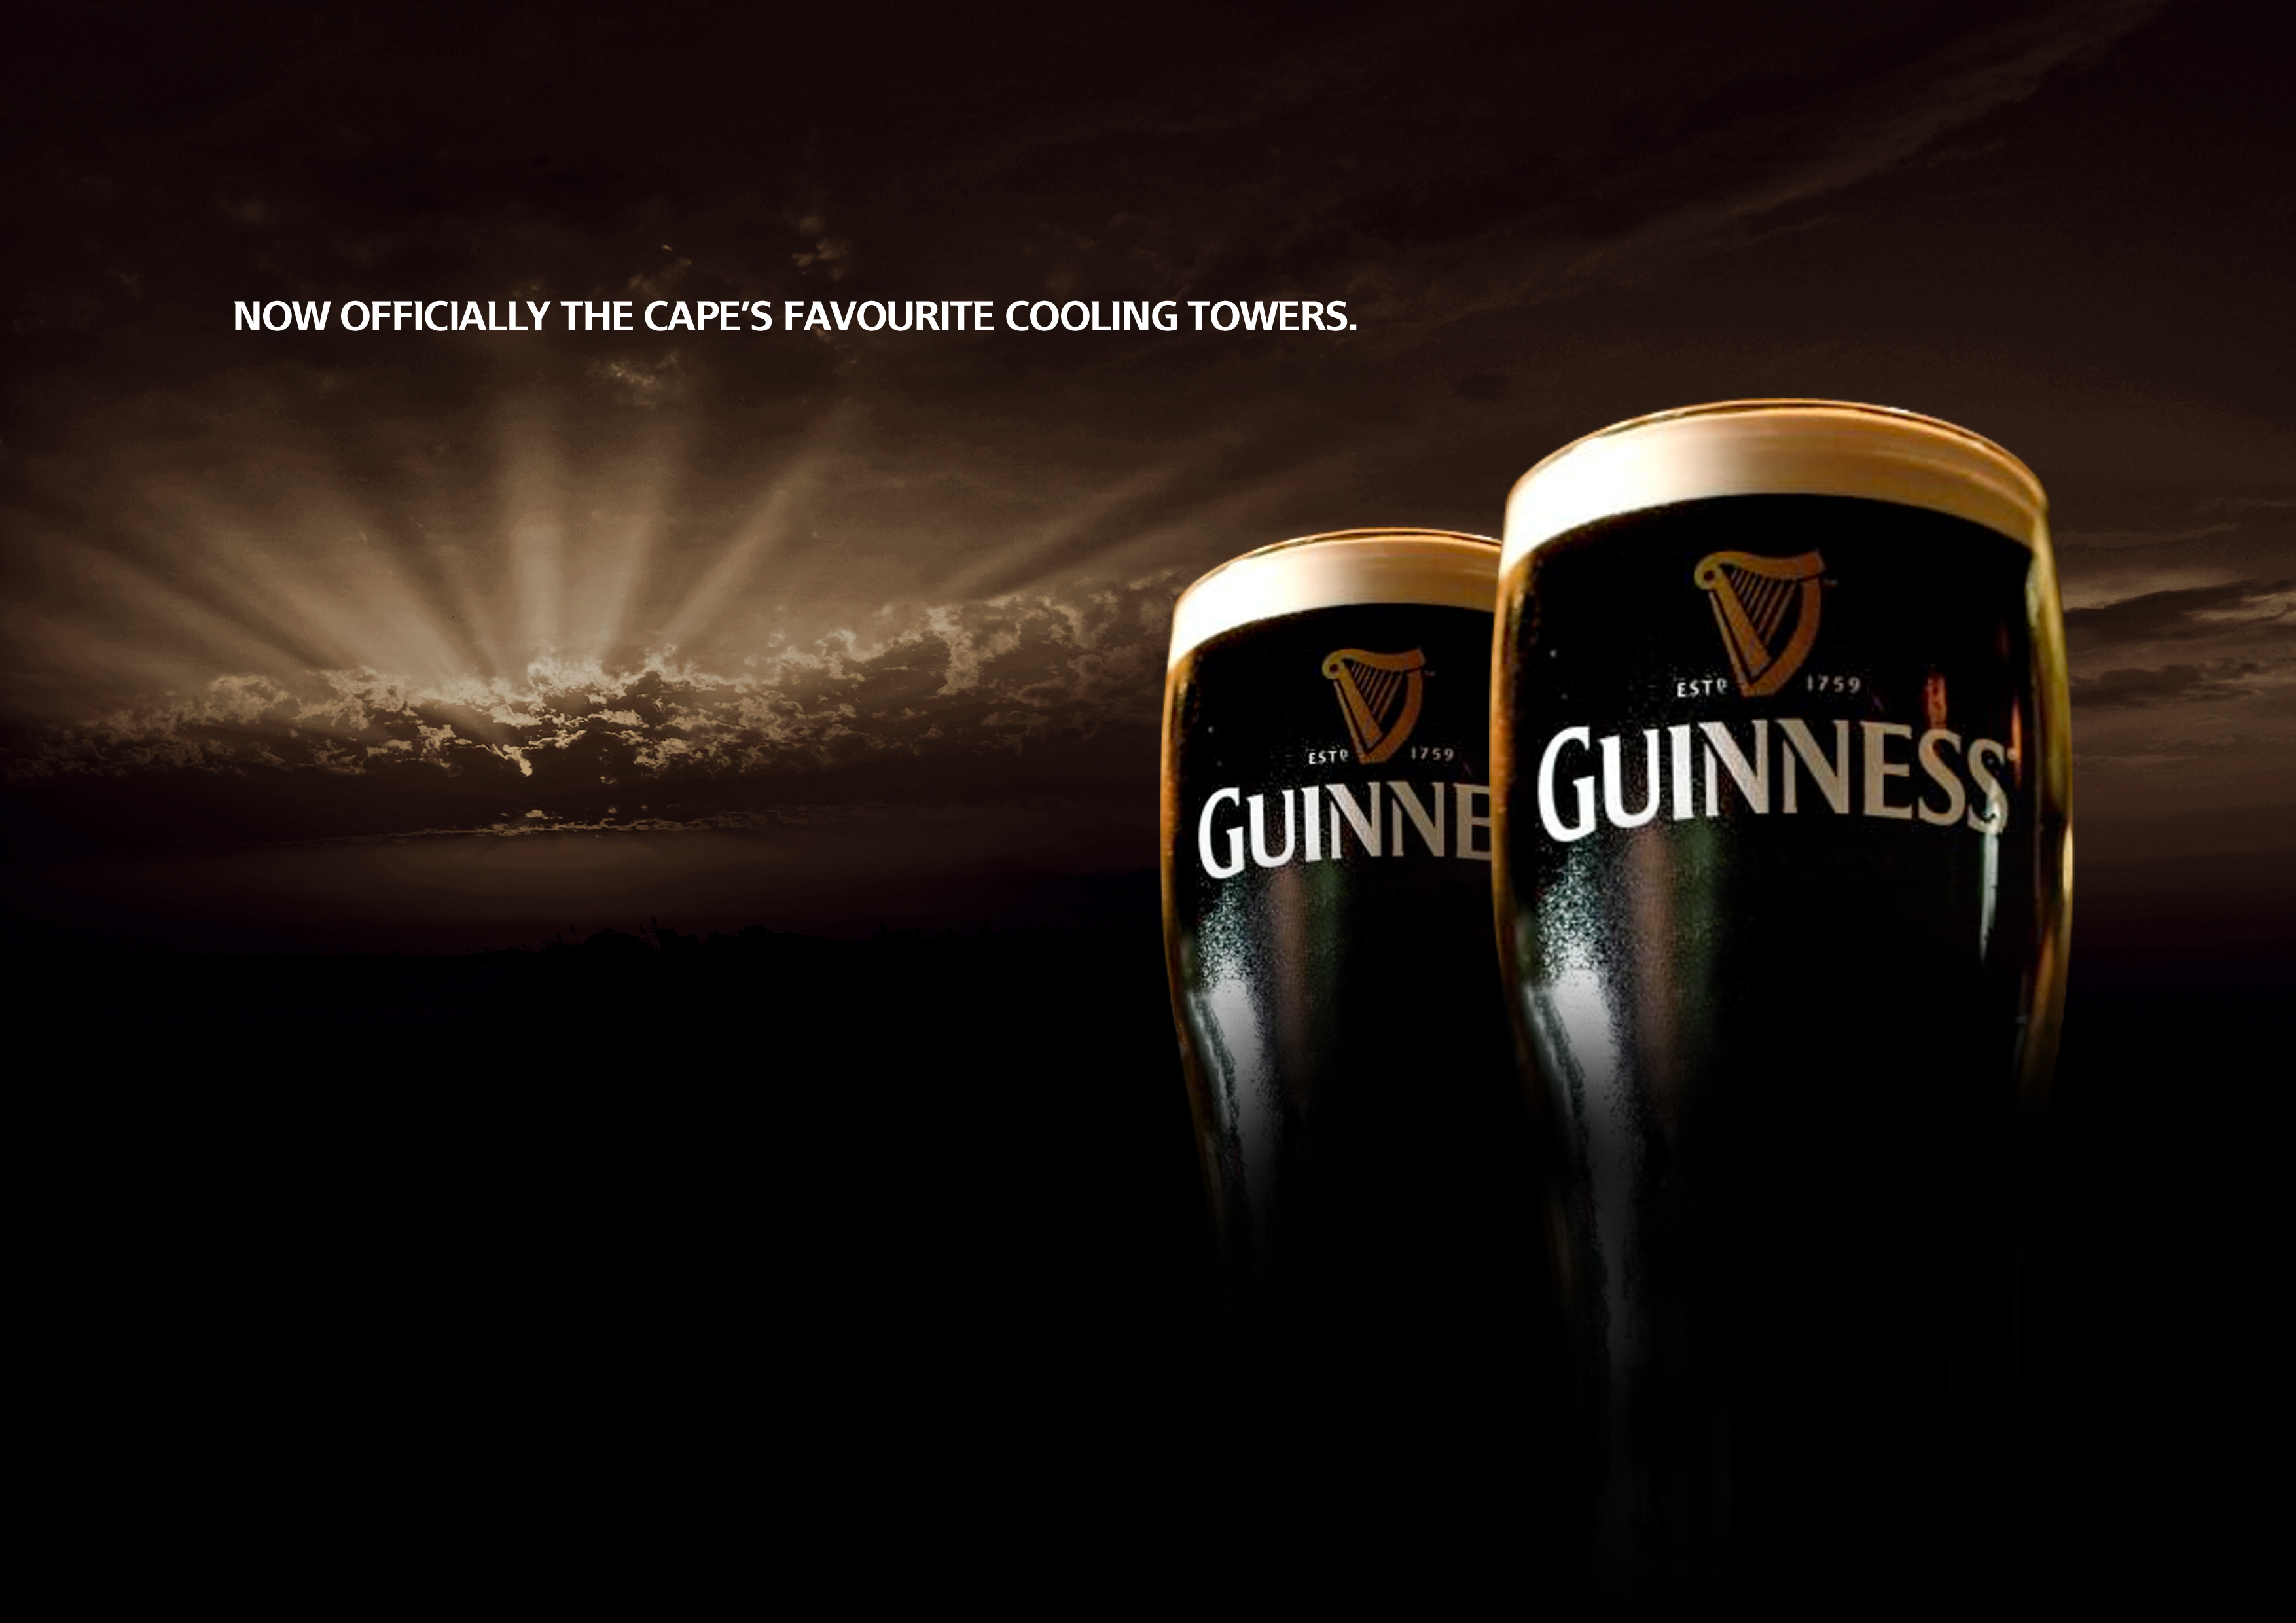 guinness hd wallpaper background image 3508x2480 id 434738